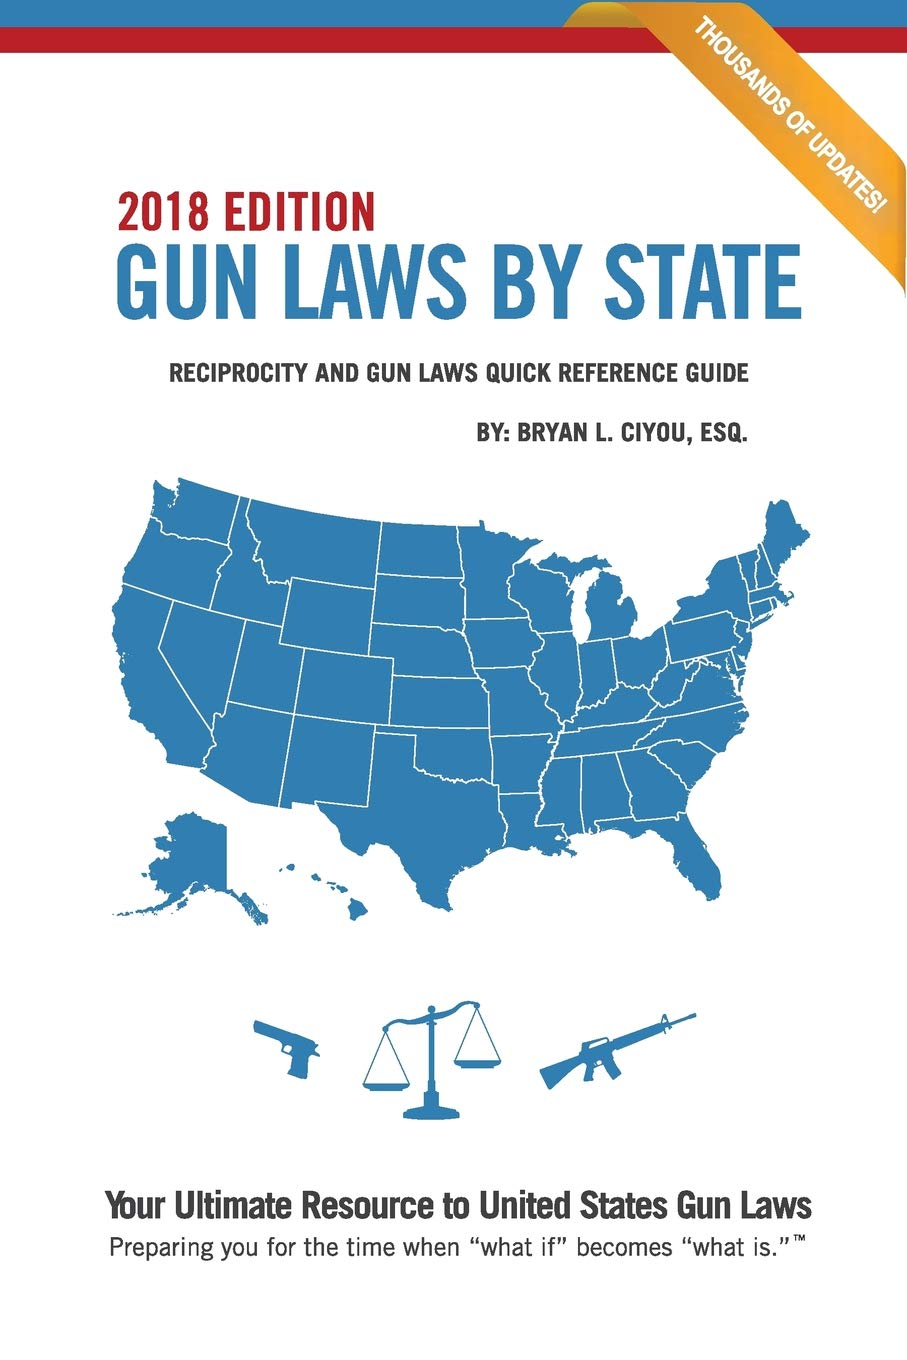 Gun Laws By State 2018 Edition: Reciprocity And Gun Laws Quick Reference  Guide (Volume 7): Bryan L. Ciyou ESQ.: 9781946208767: Amazon.com: Books